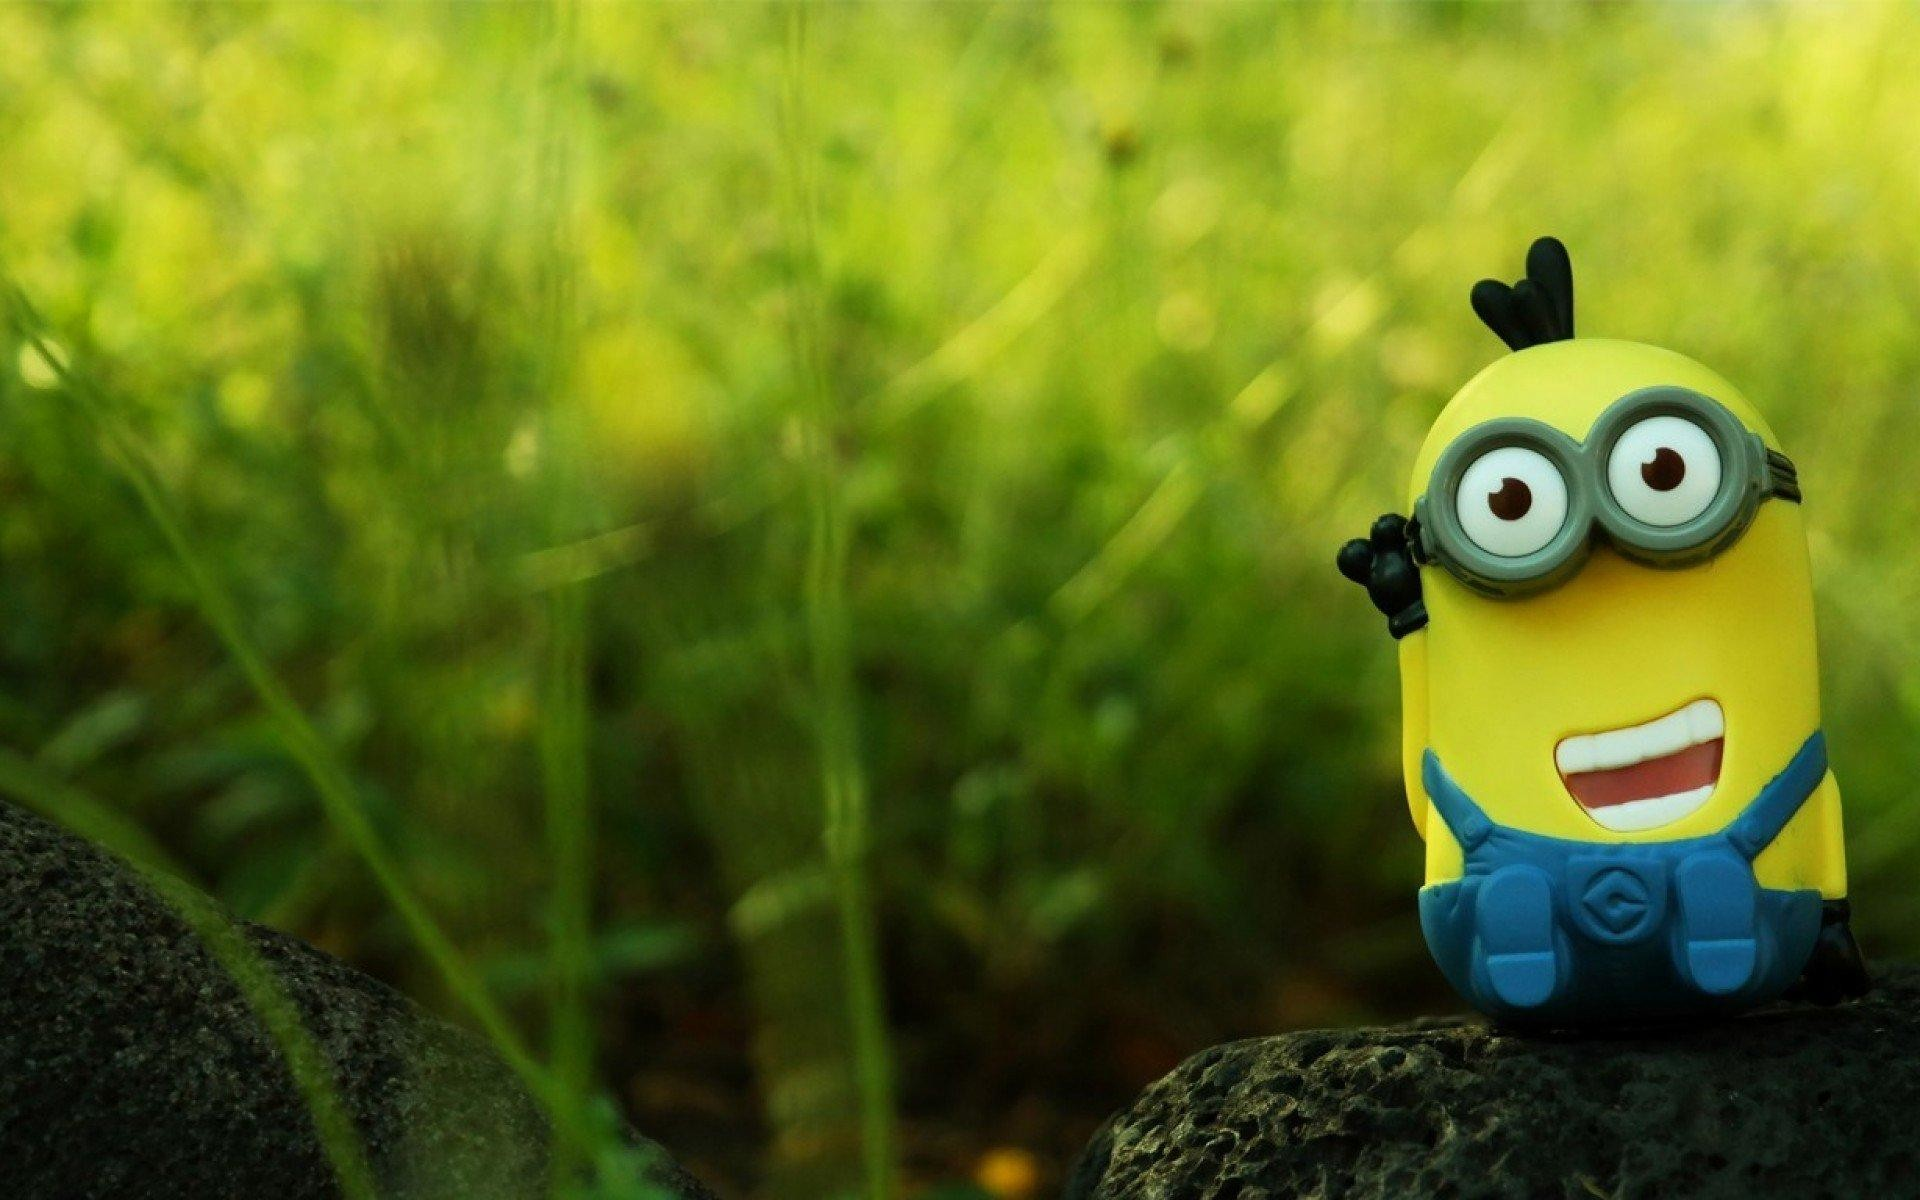 Minion Wallpaper Backgrounds (66+ Images